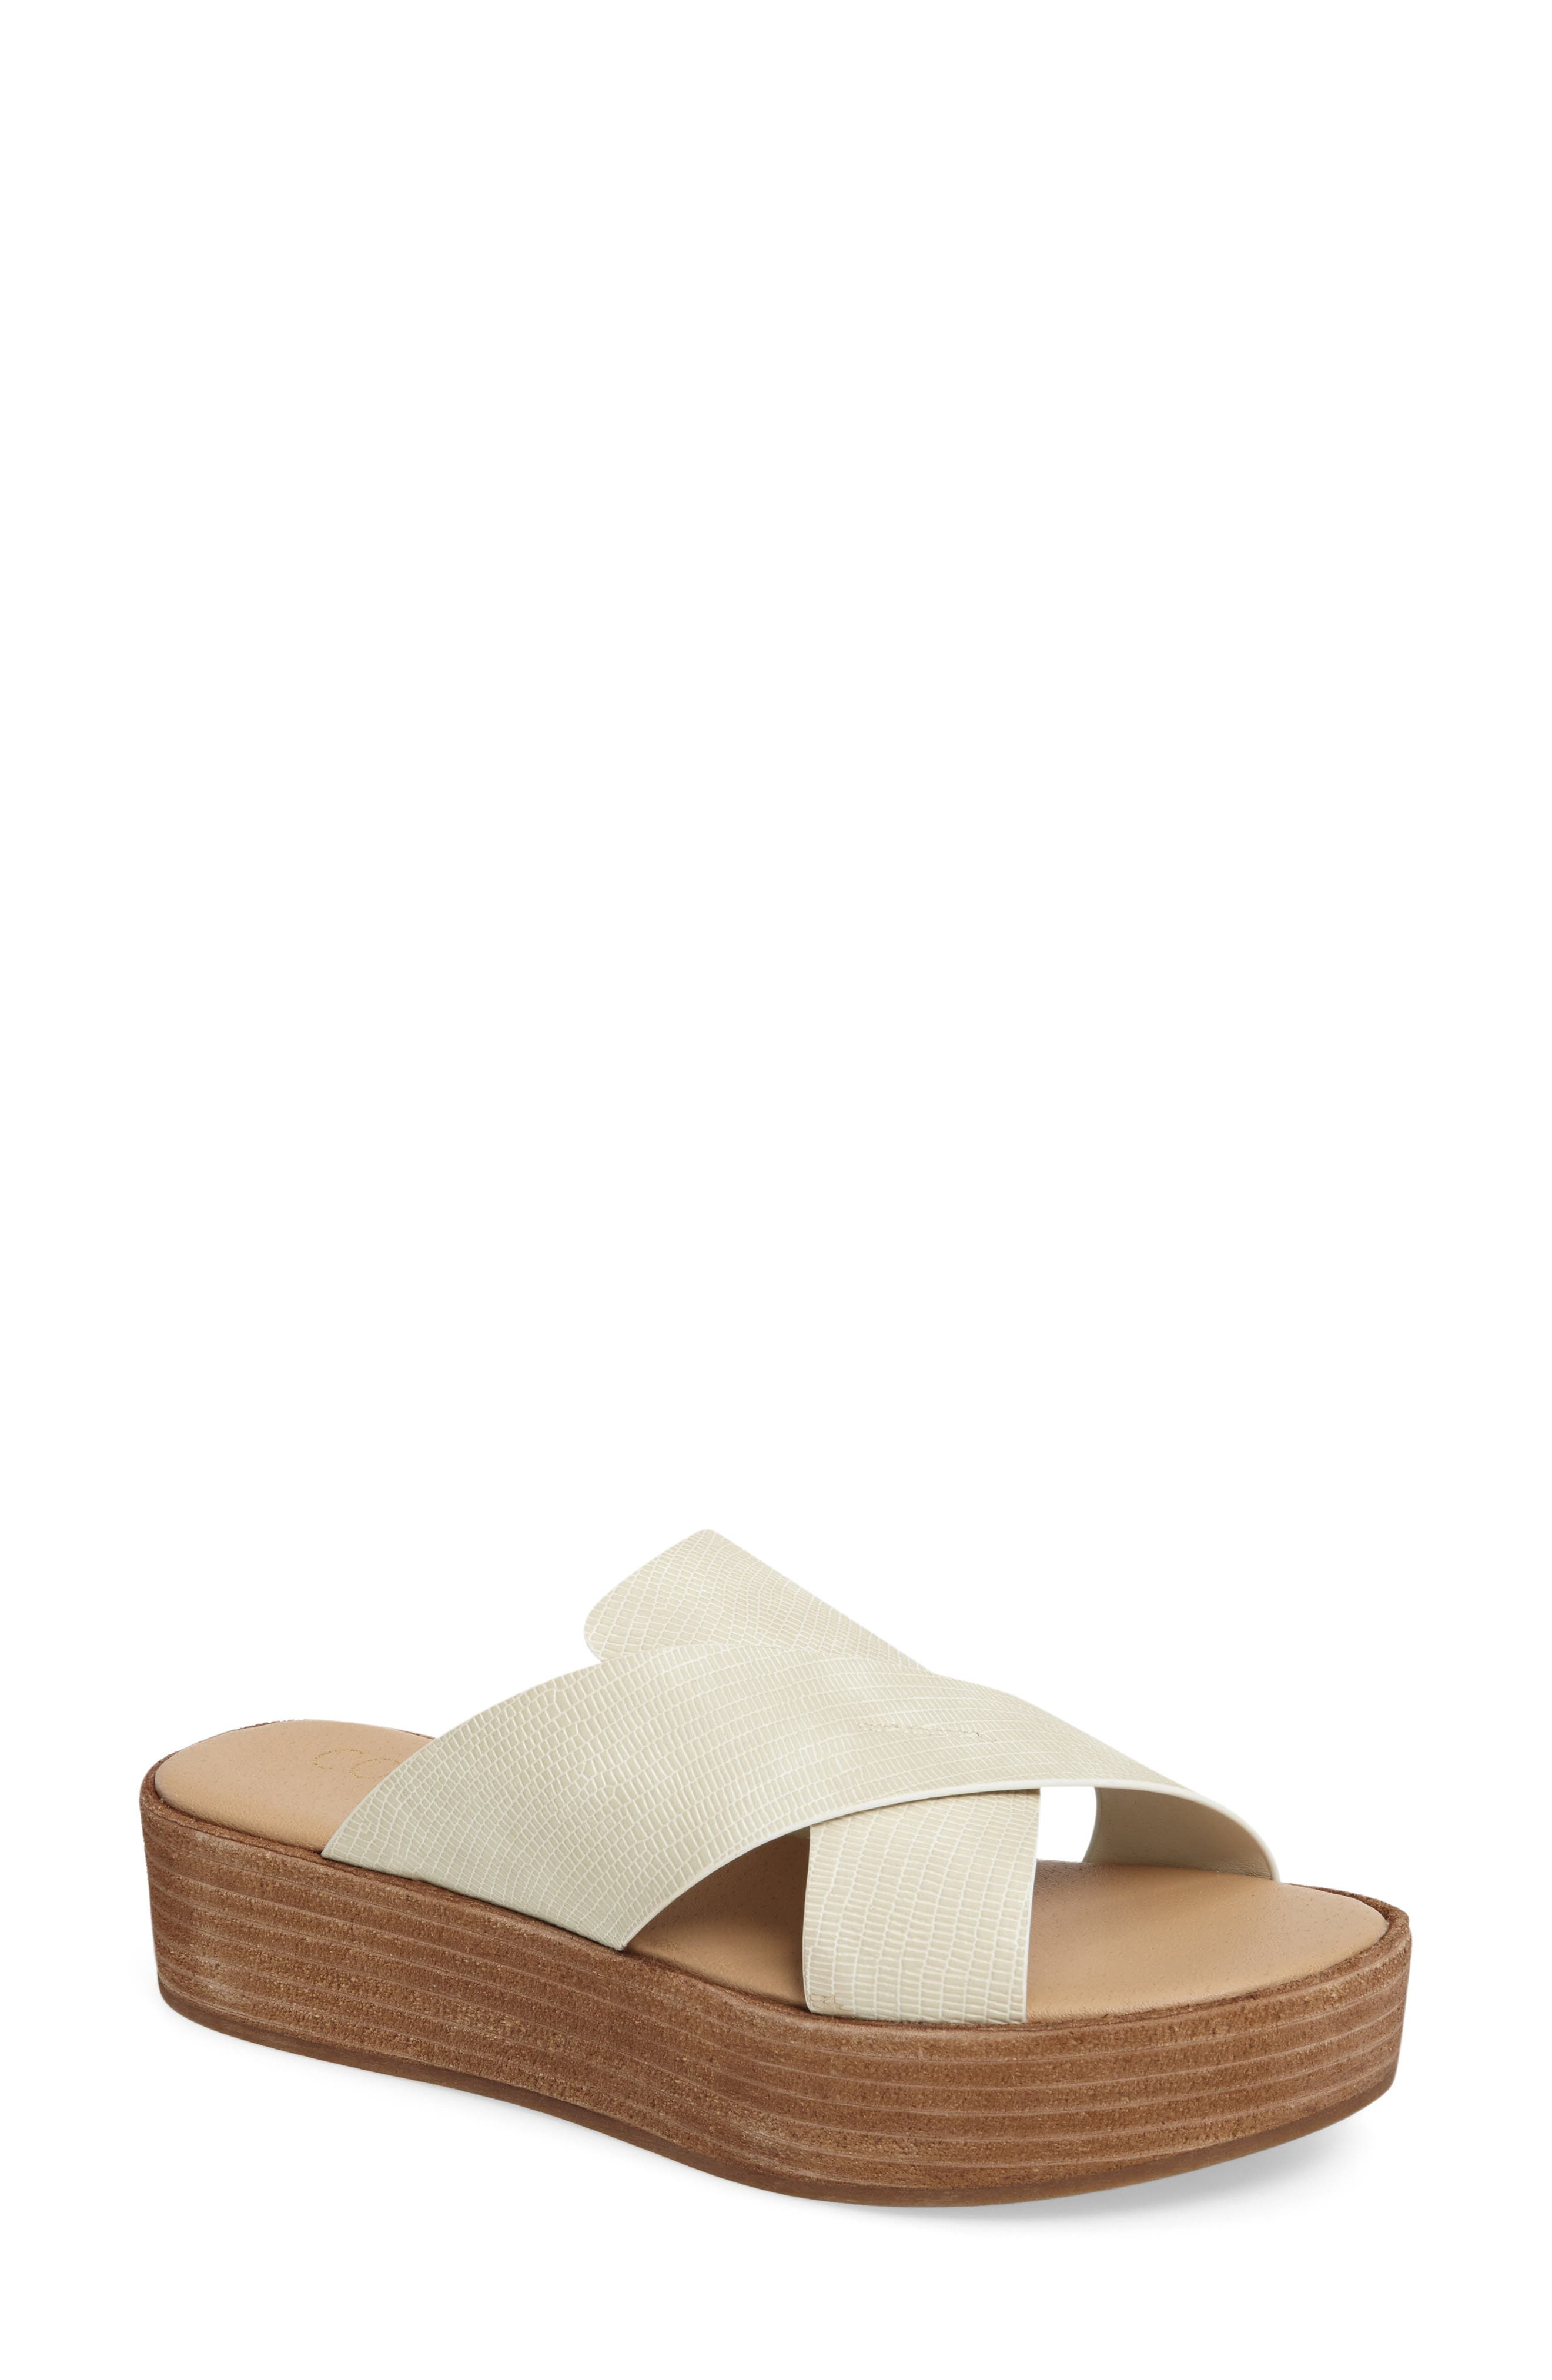 Coconuts by Matisse Masters Cross Strap Platform Sandal,                         Main,                         color, White Leather